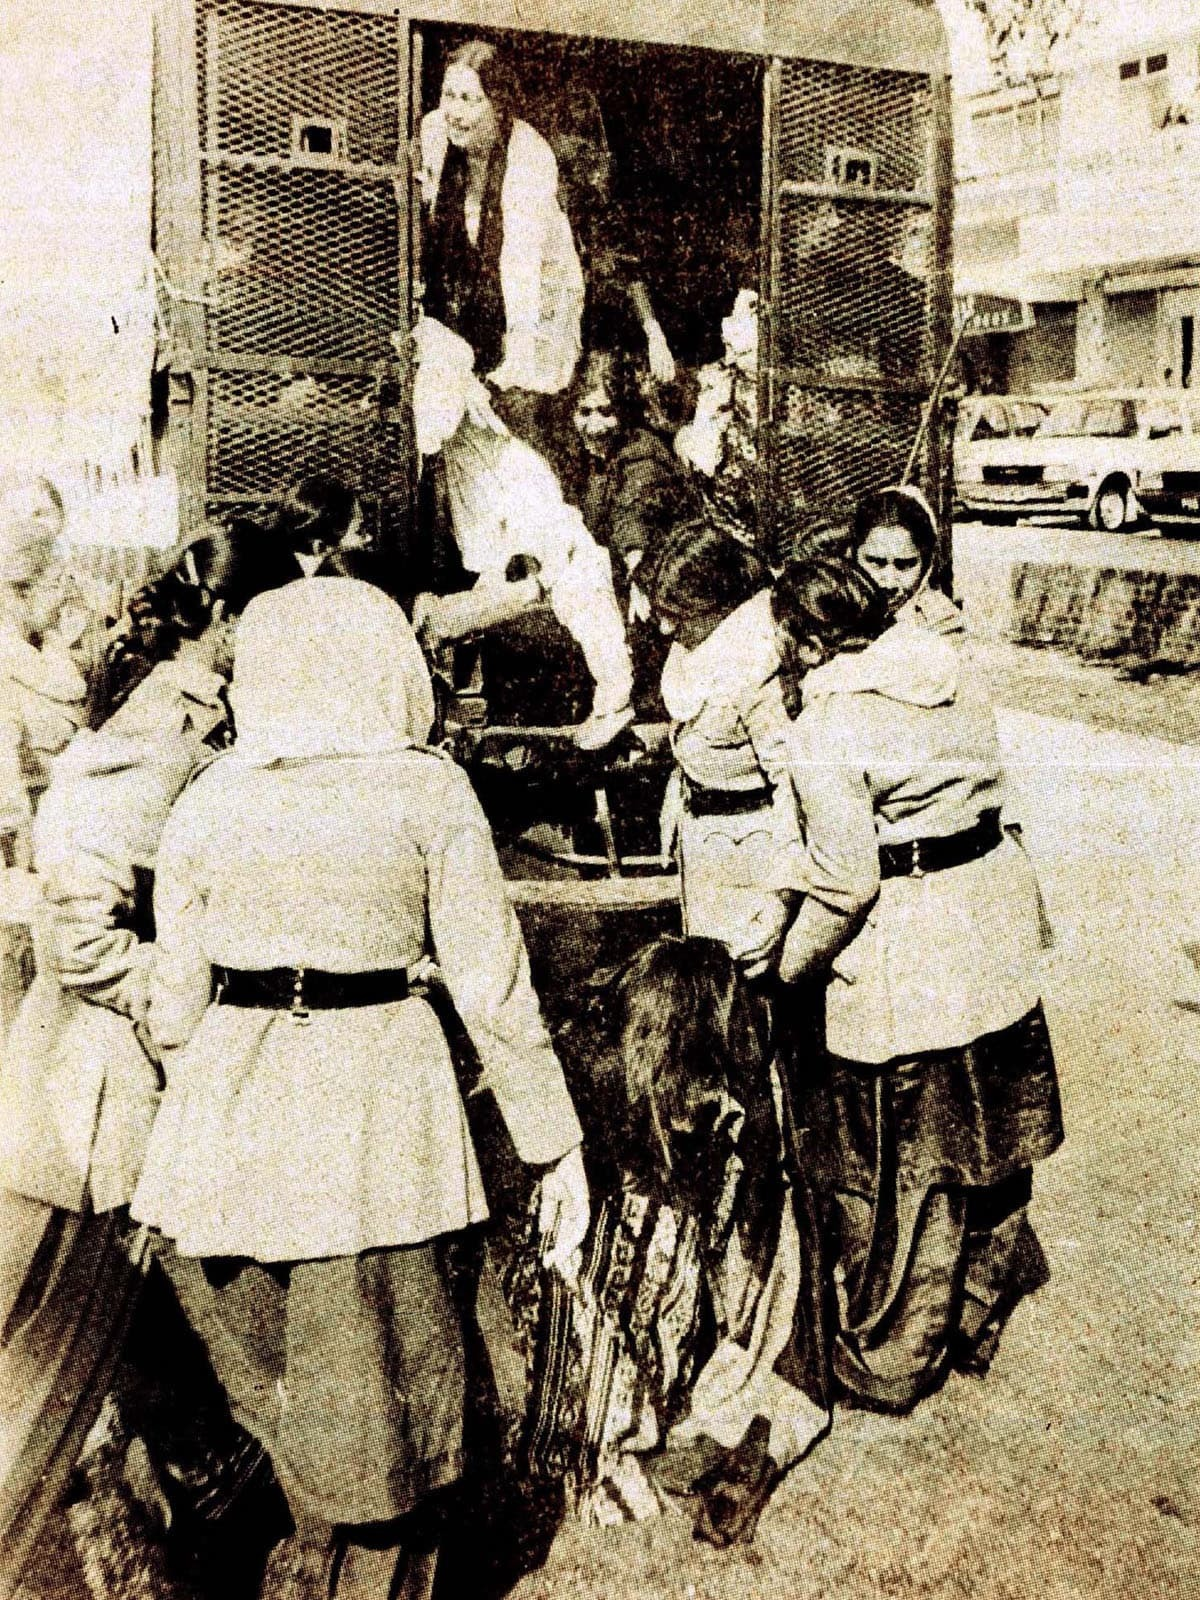 Female protesters being arrested during Zia's regime | *Herald* archives